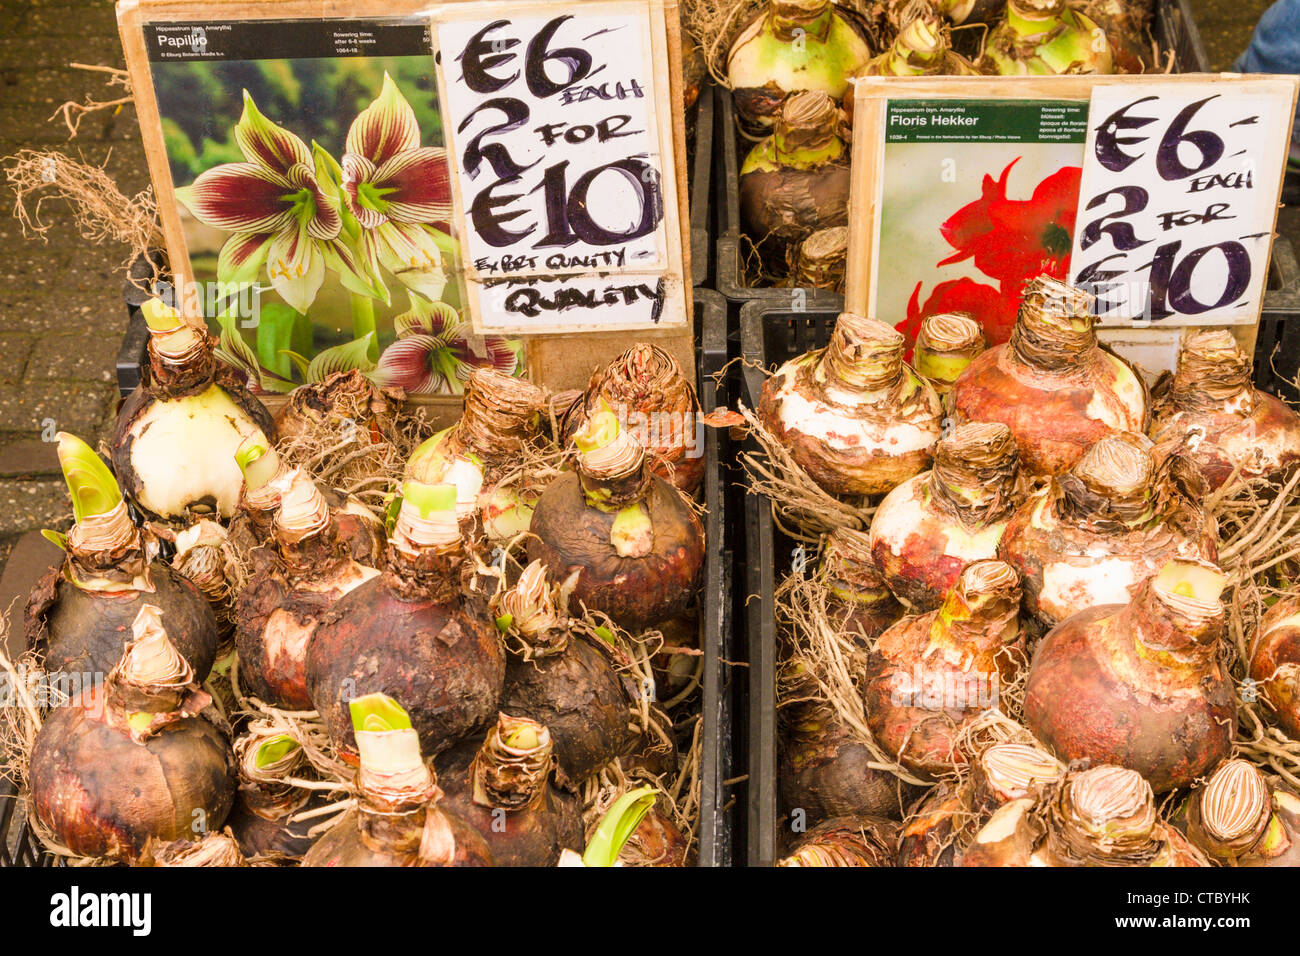 Amaryllis bulbs for sale at Flower market Stock Photo